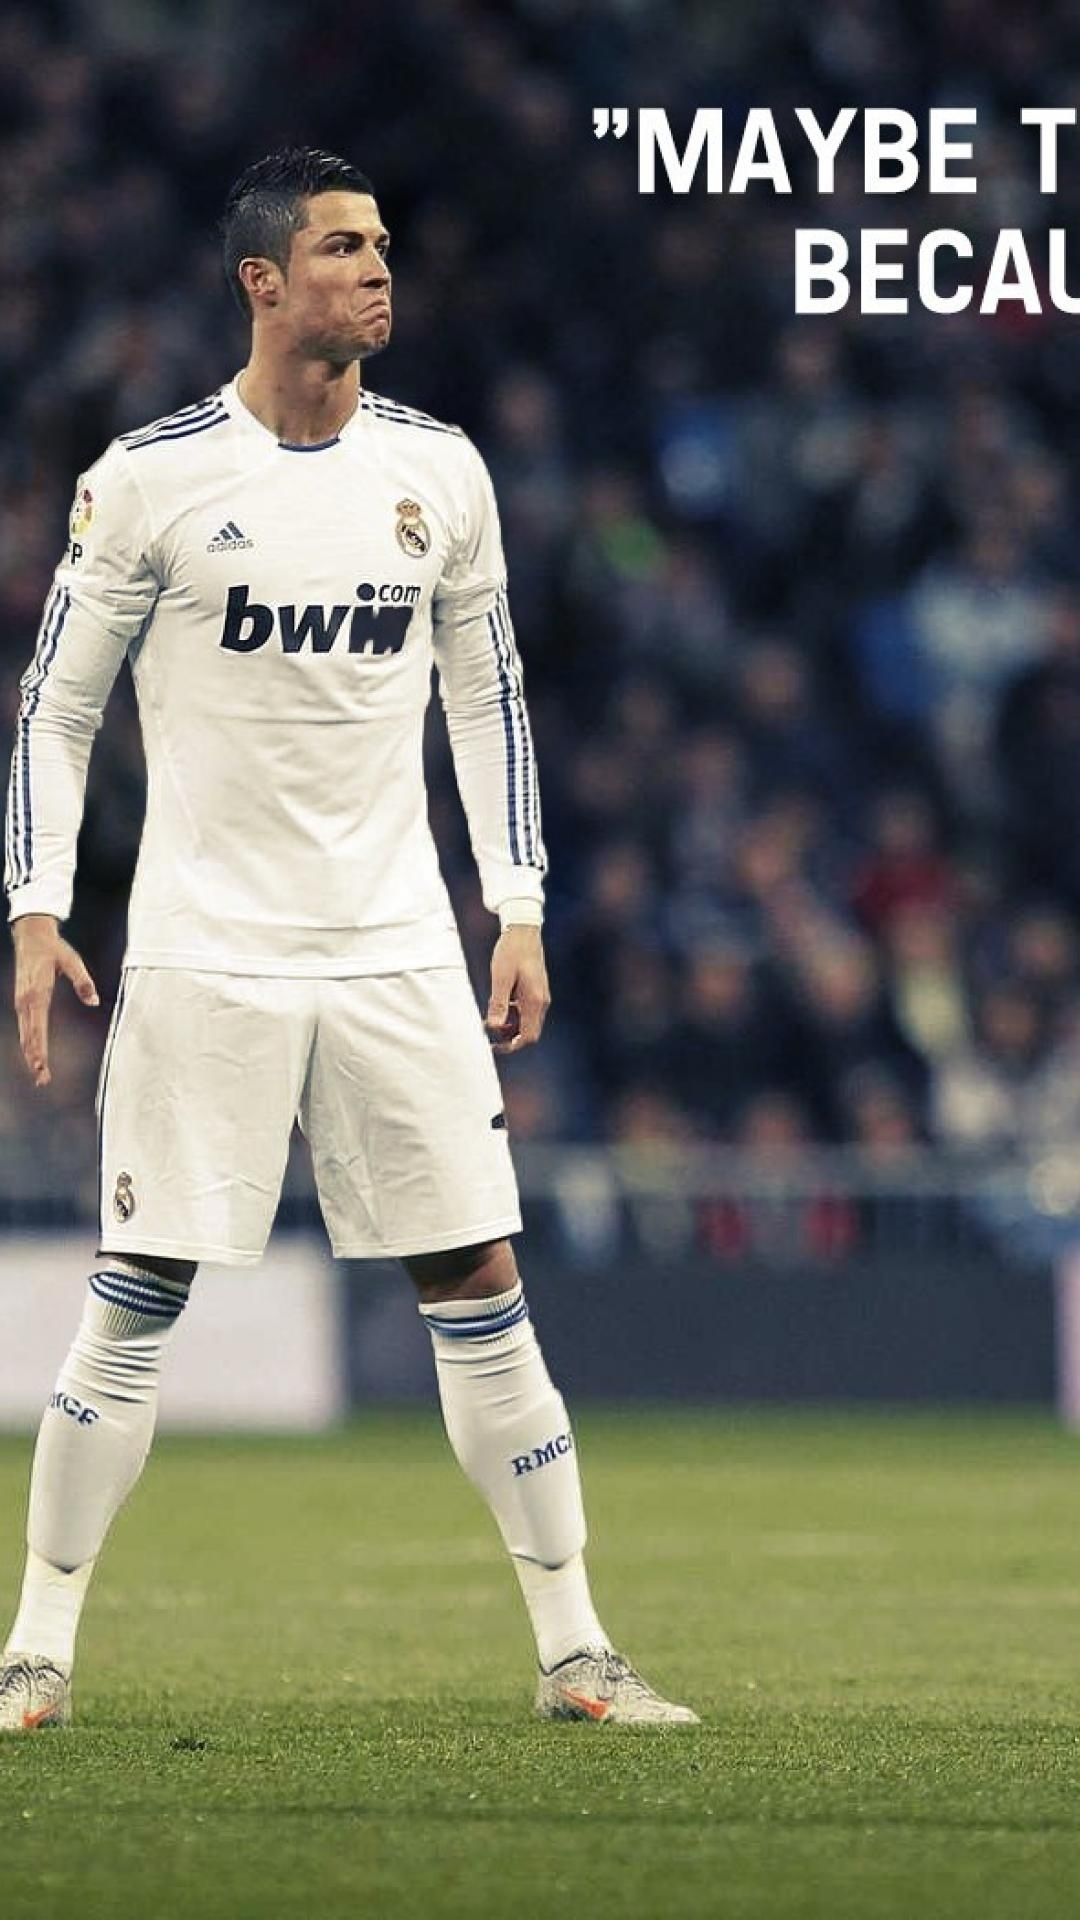 High Quality Cristiano Ronaldo Wallpaper For Iphone 6   Download Best Cristiano Ronaldo  Wallpaper For Iphone 6for IPhone Wallpaper InHigh Quality.